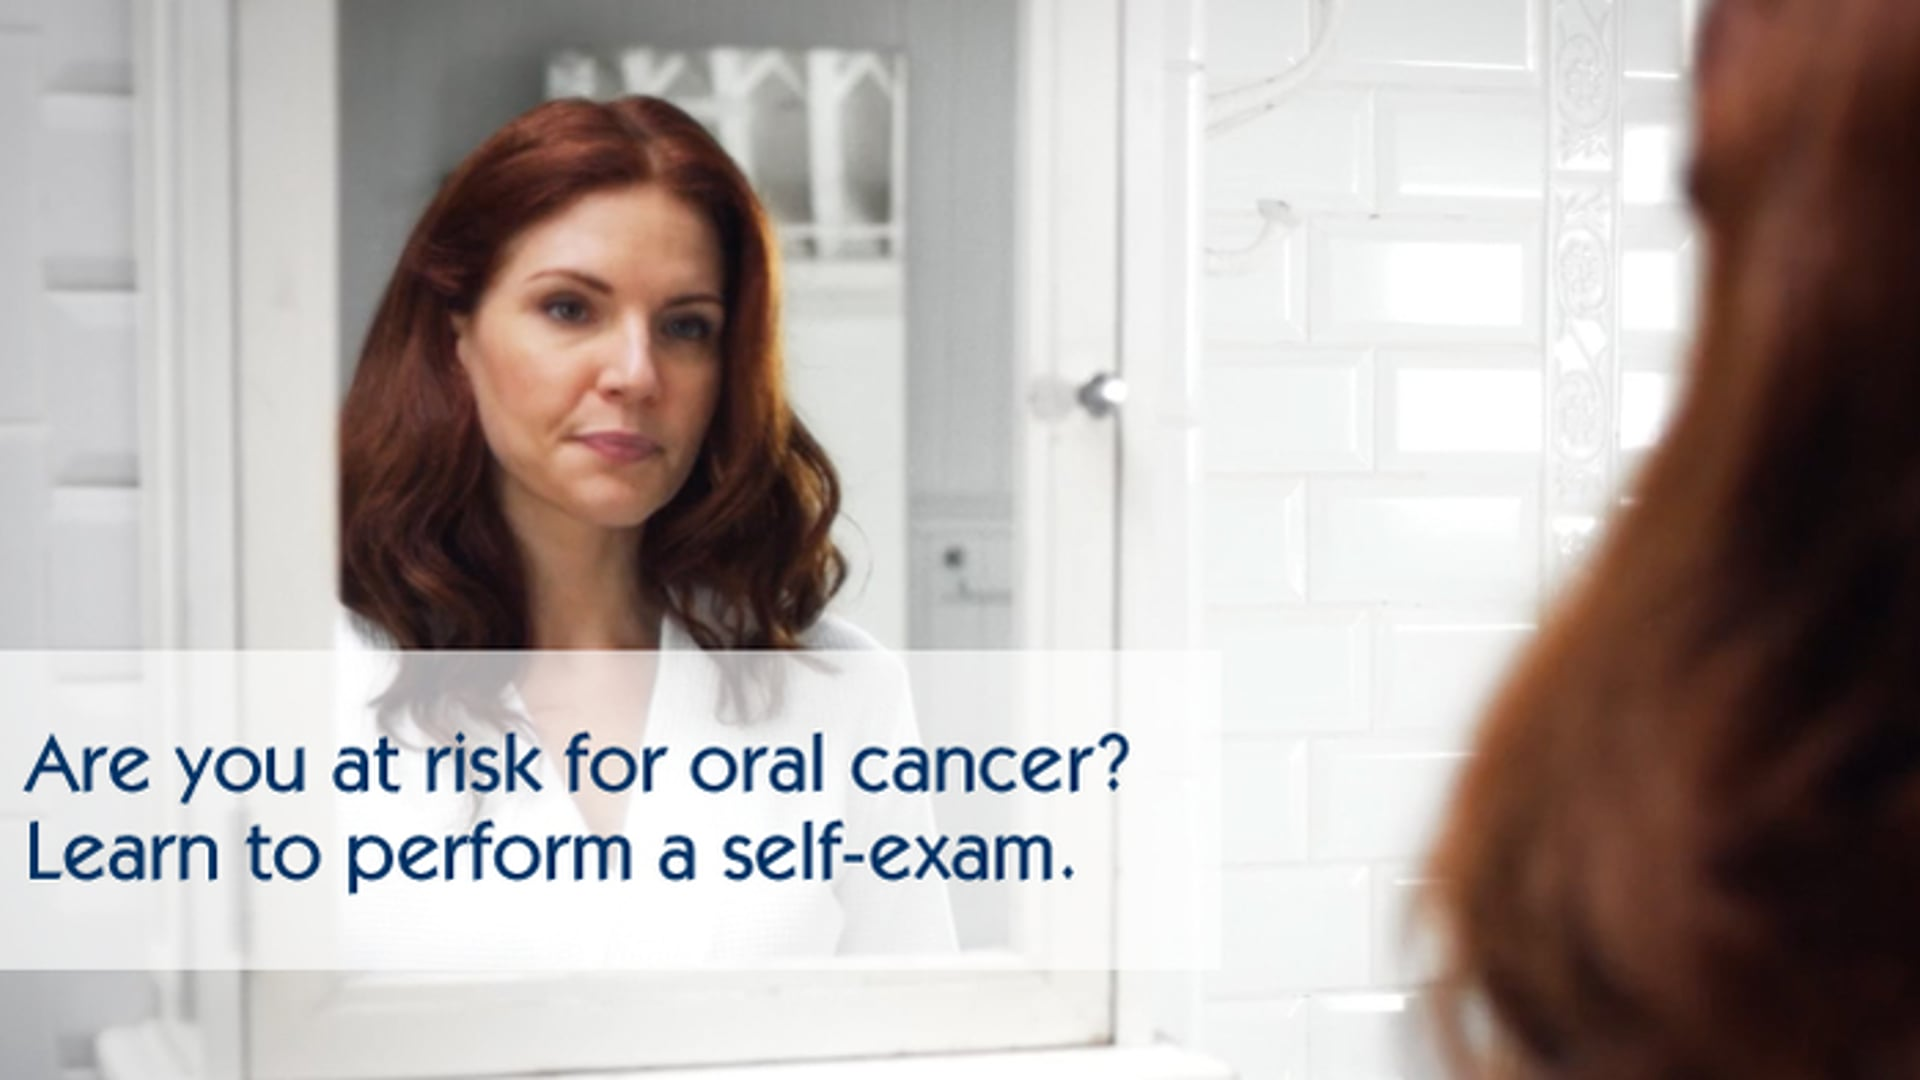 Learn to perform an oral cancer self-exam.